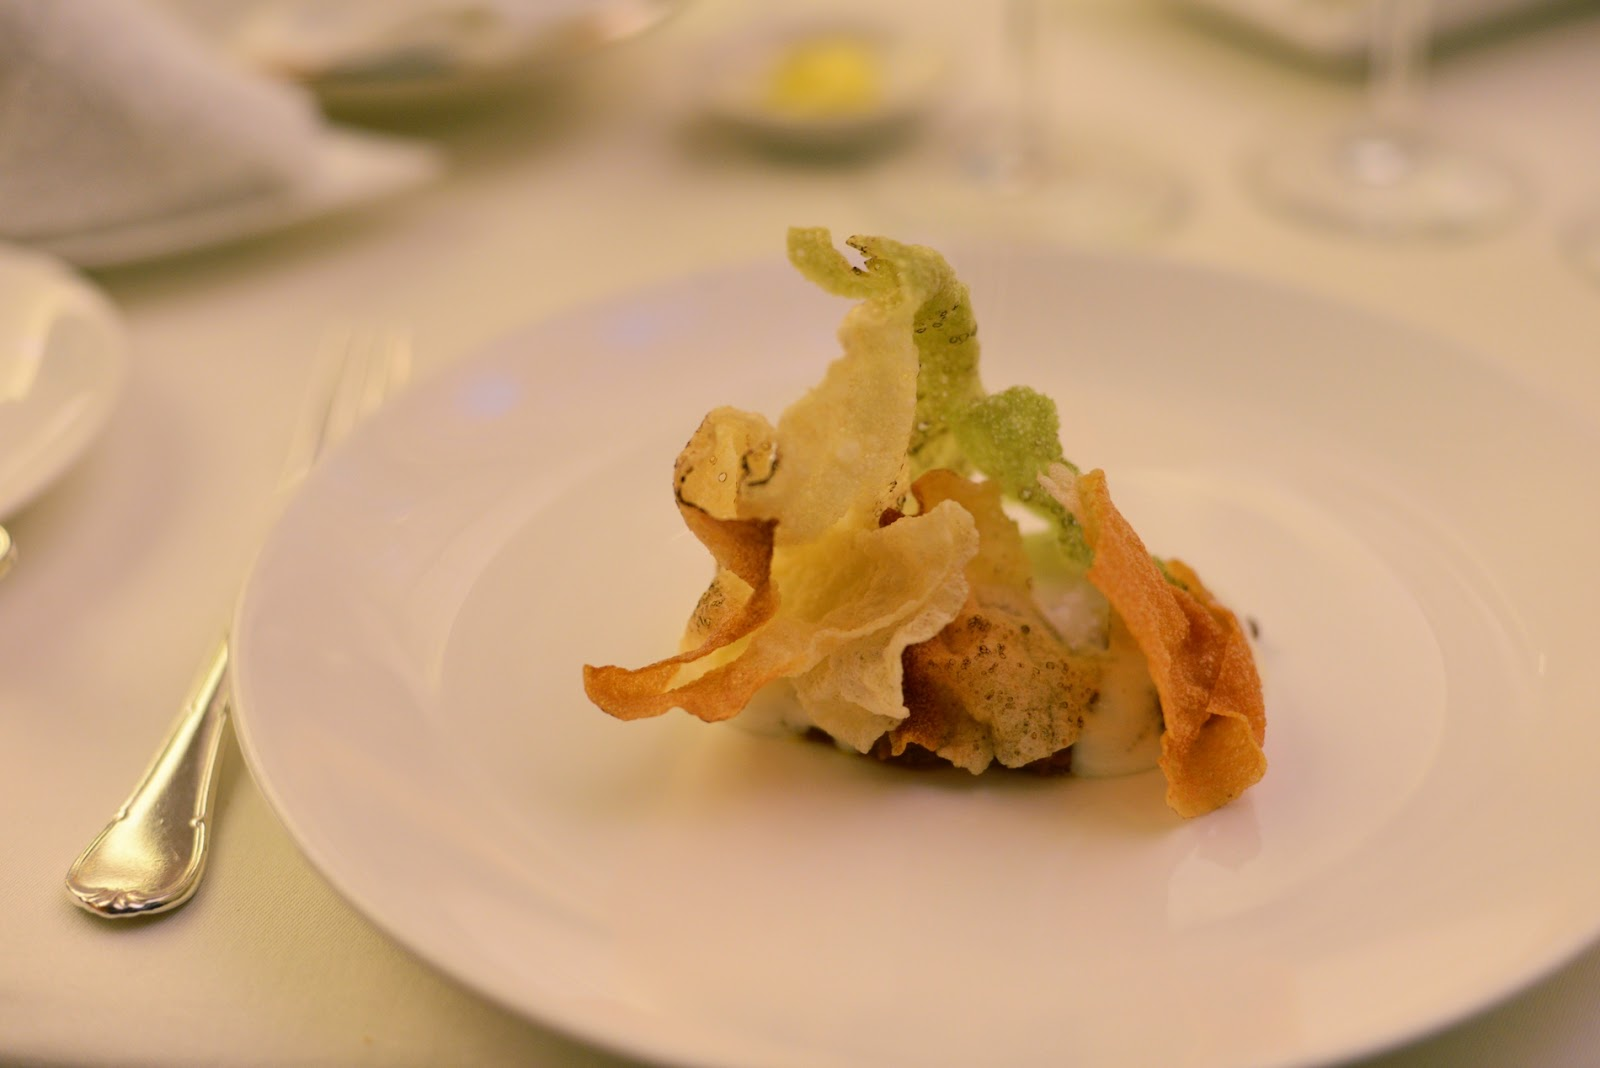 Masterful Nine-course Dinner by Two Michelin Stared Chefs